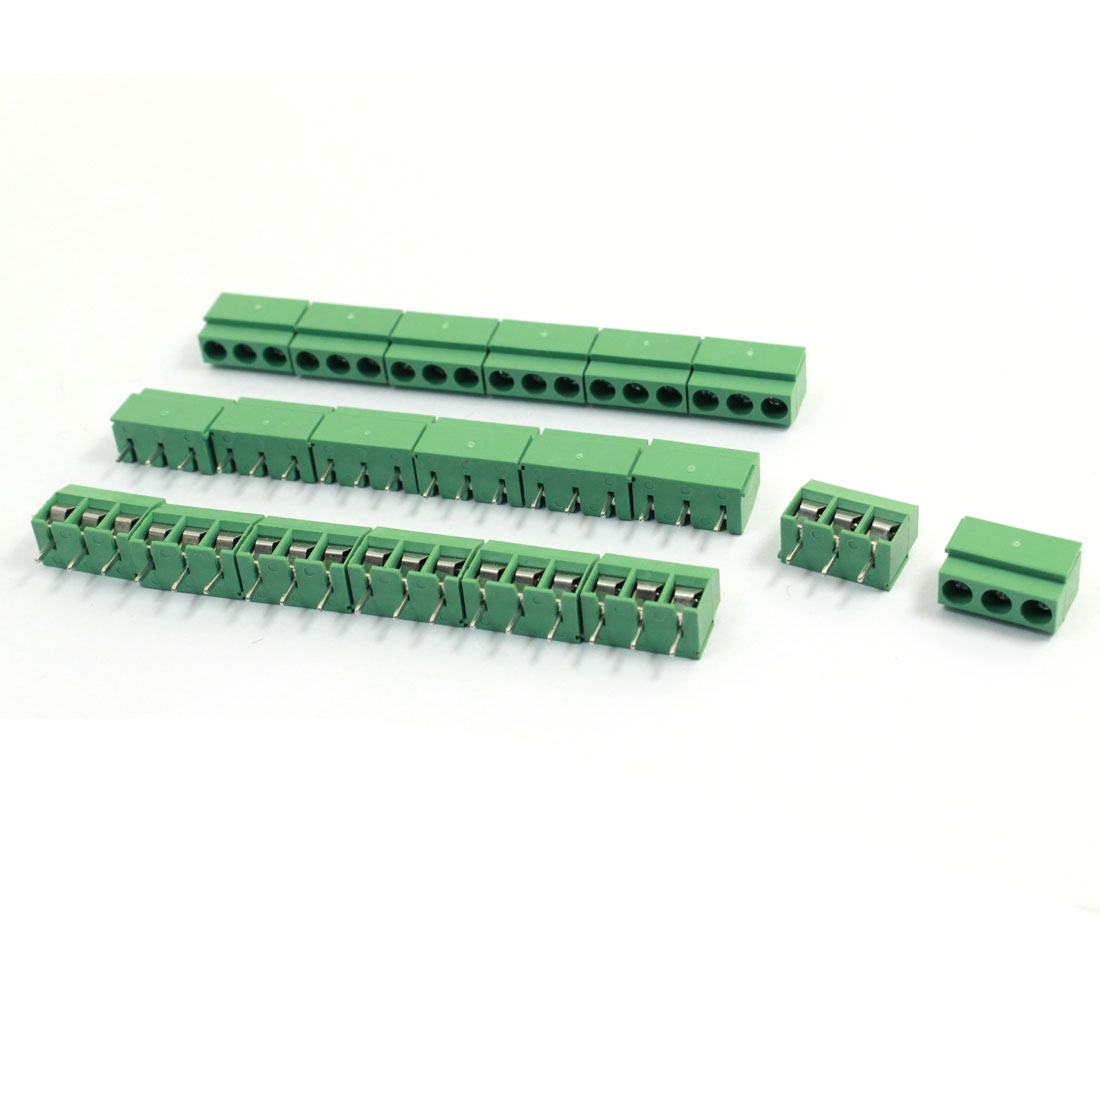 20 Pcs 126-3P 3Pin 5mm Pitch Screw Terminal Block 300V 10A